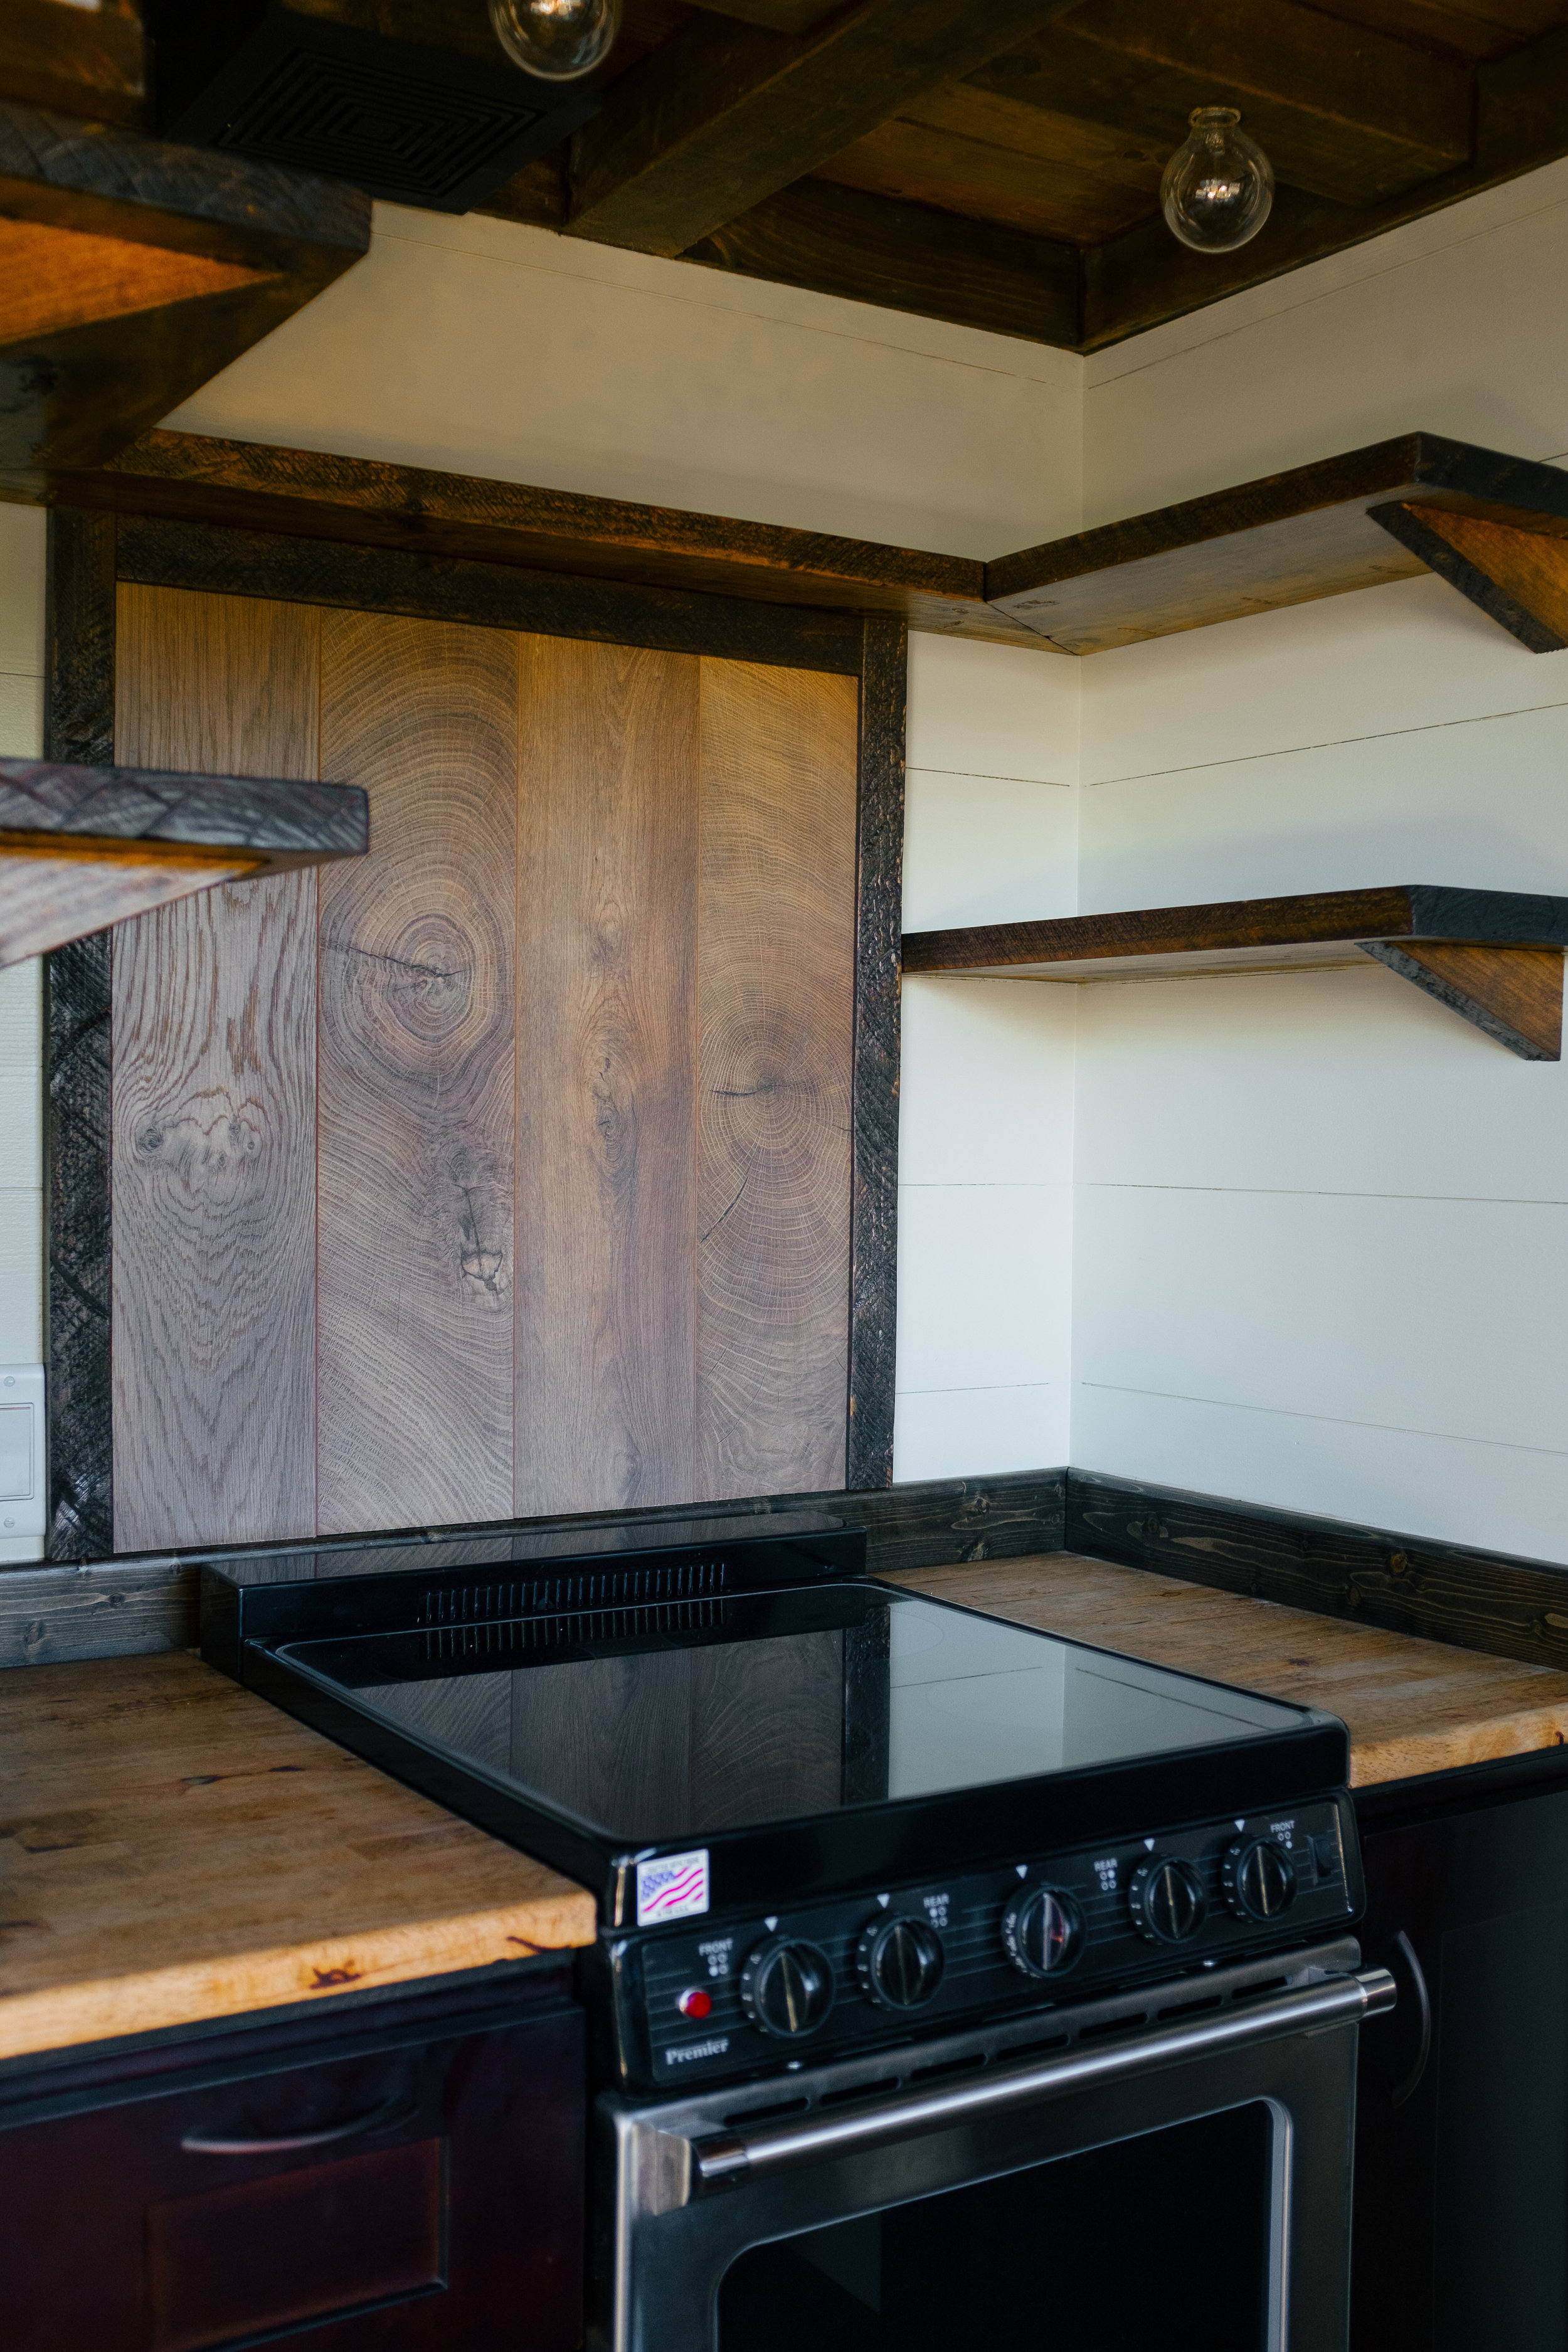 The Silhouette by Wind River Tiny Homes -shaker style cabinets, open kitchen shelving, butcher block, electric stove oven